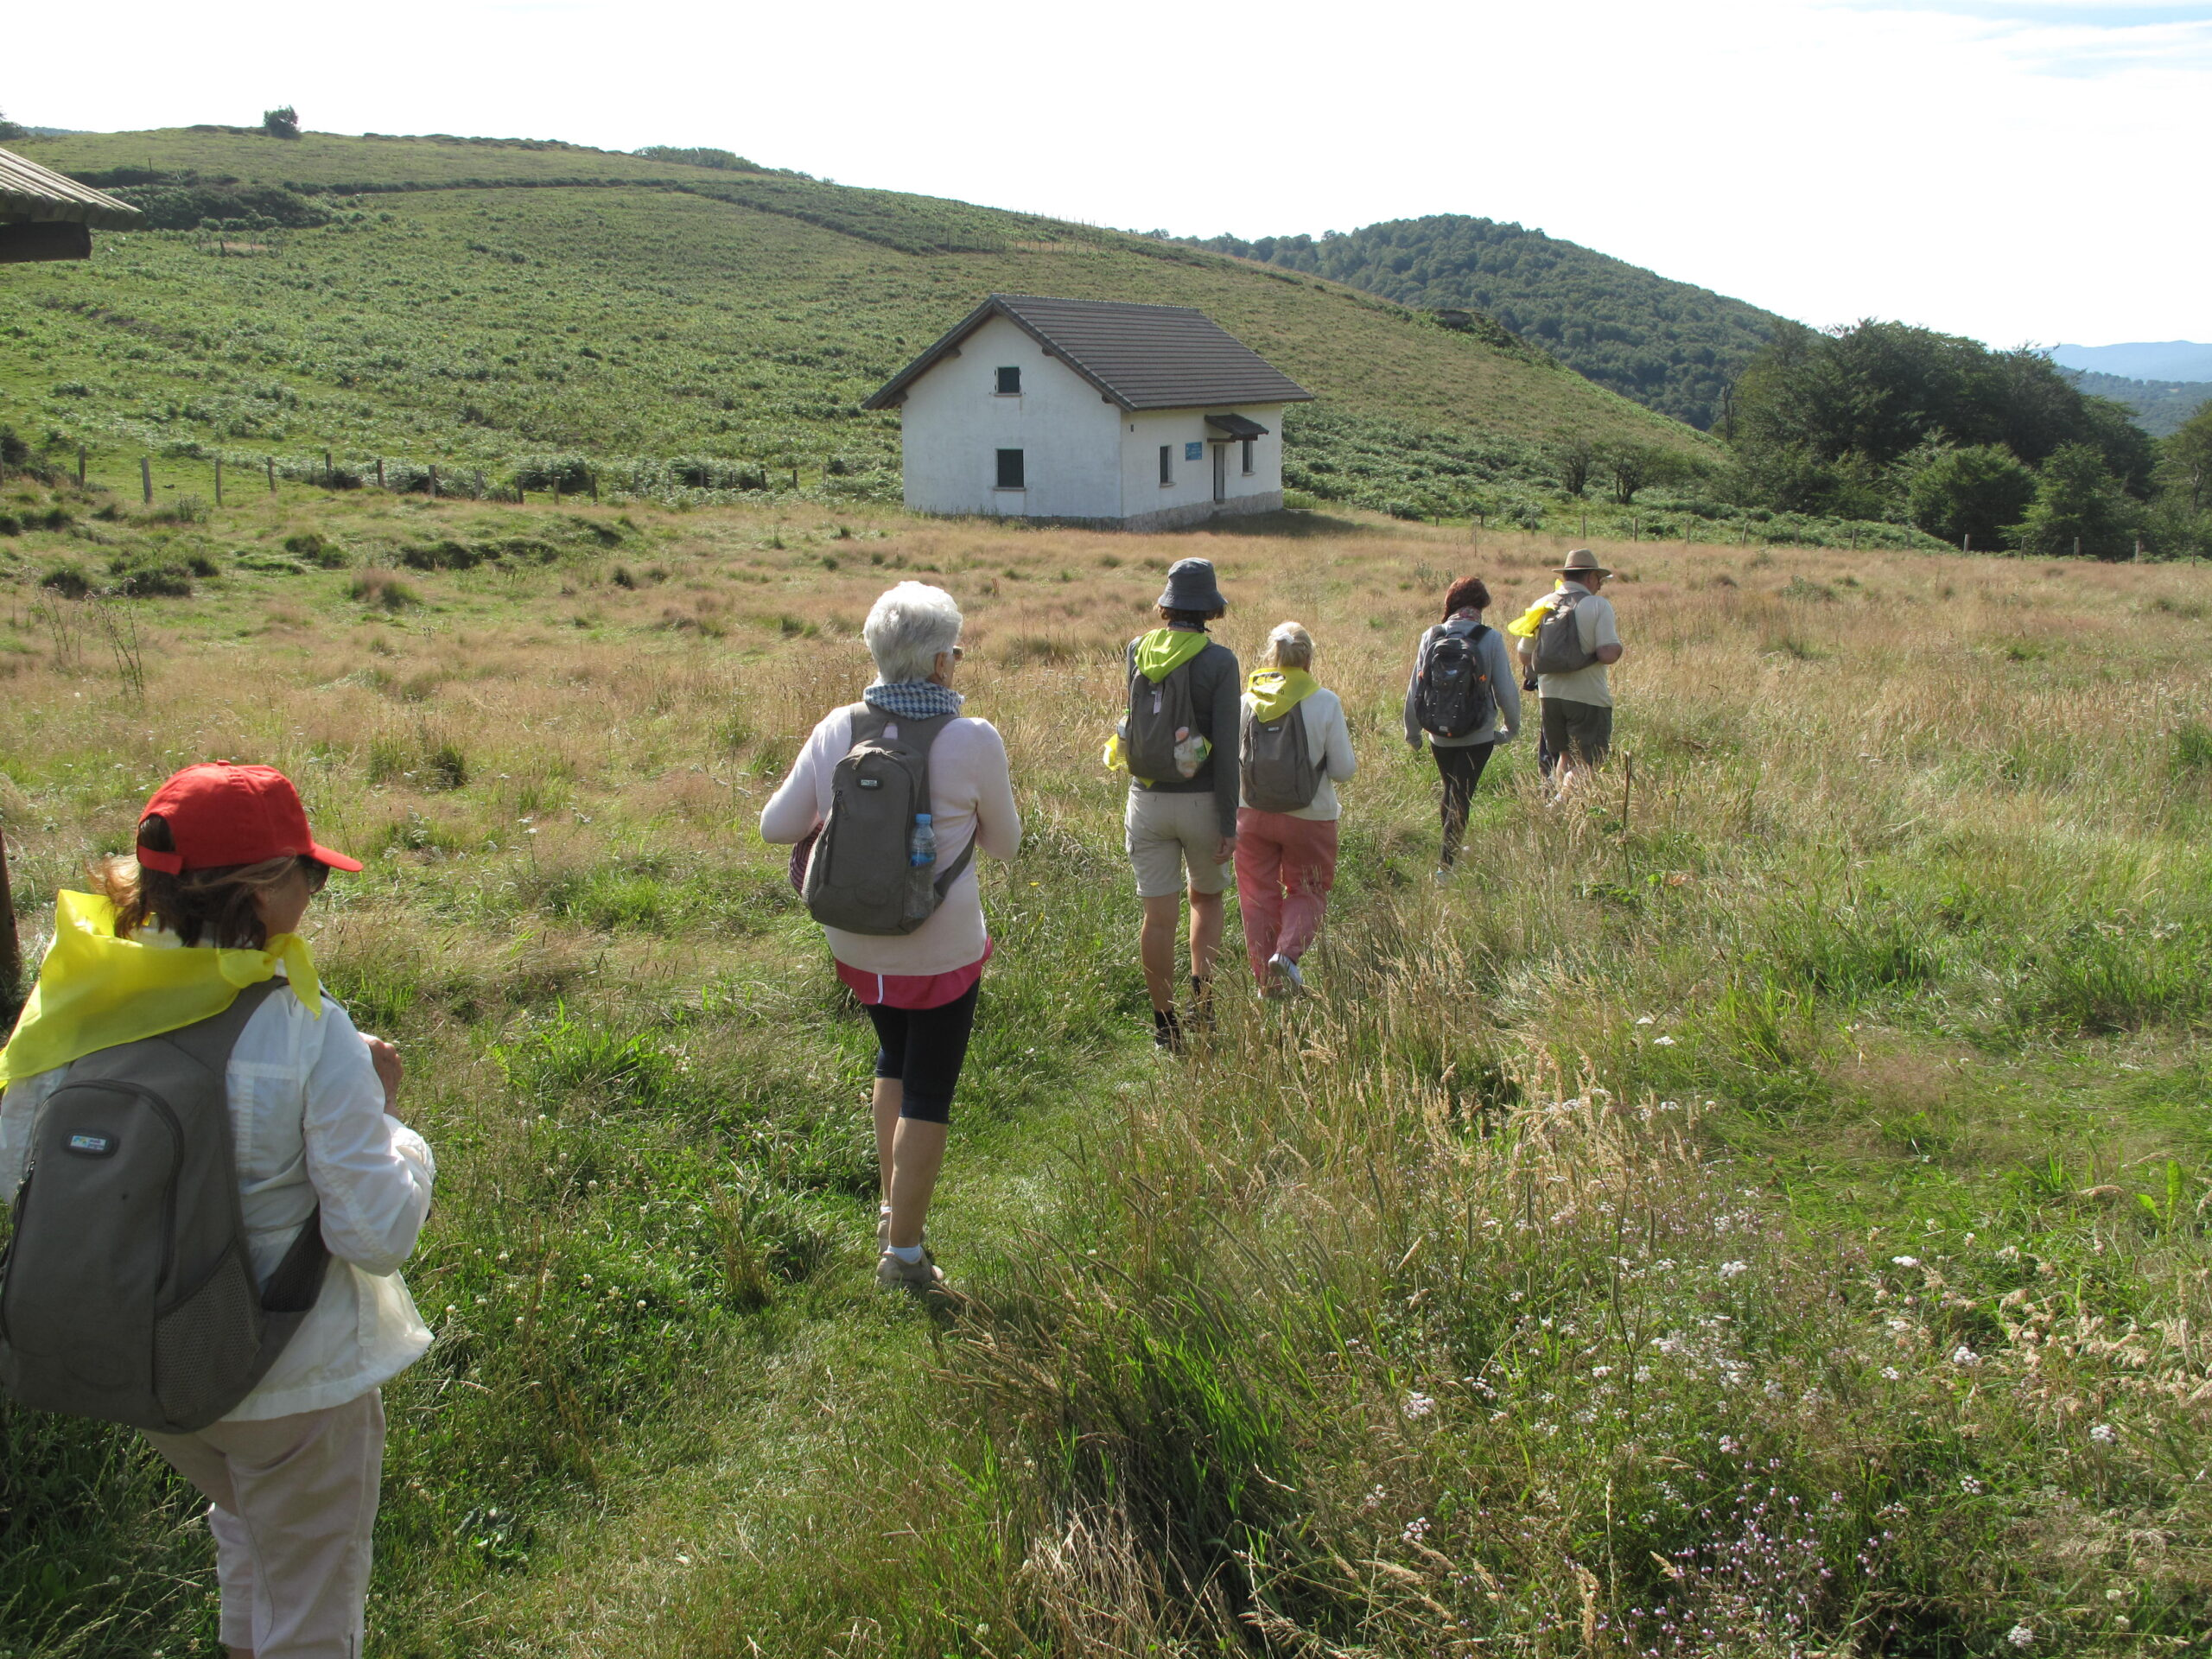 Guided Camino tours